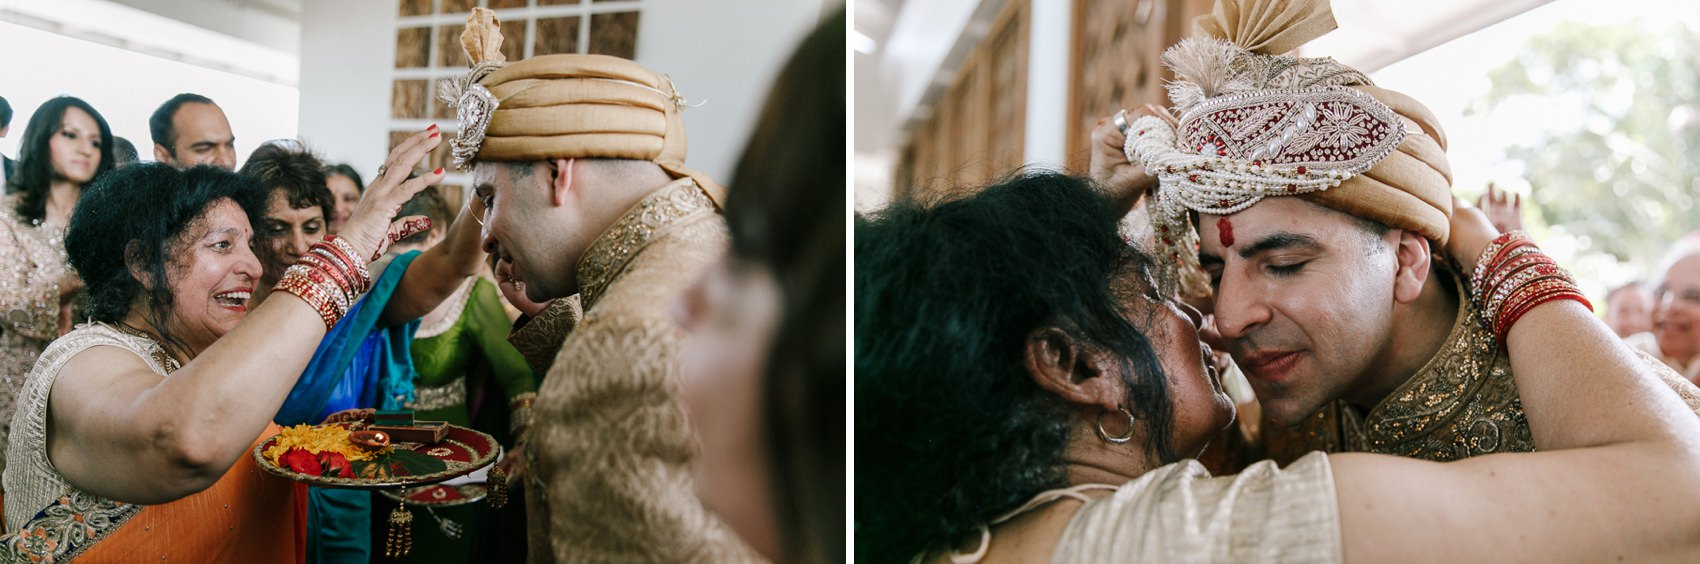 Indian-Wedding-Photography-Maala-Rohan_0202